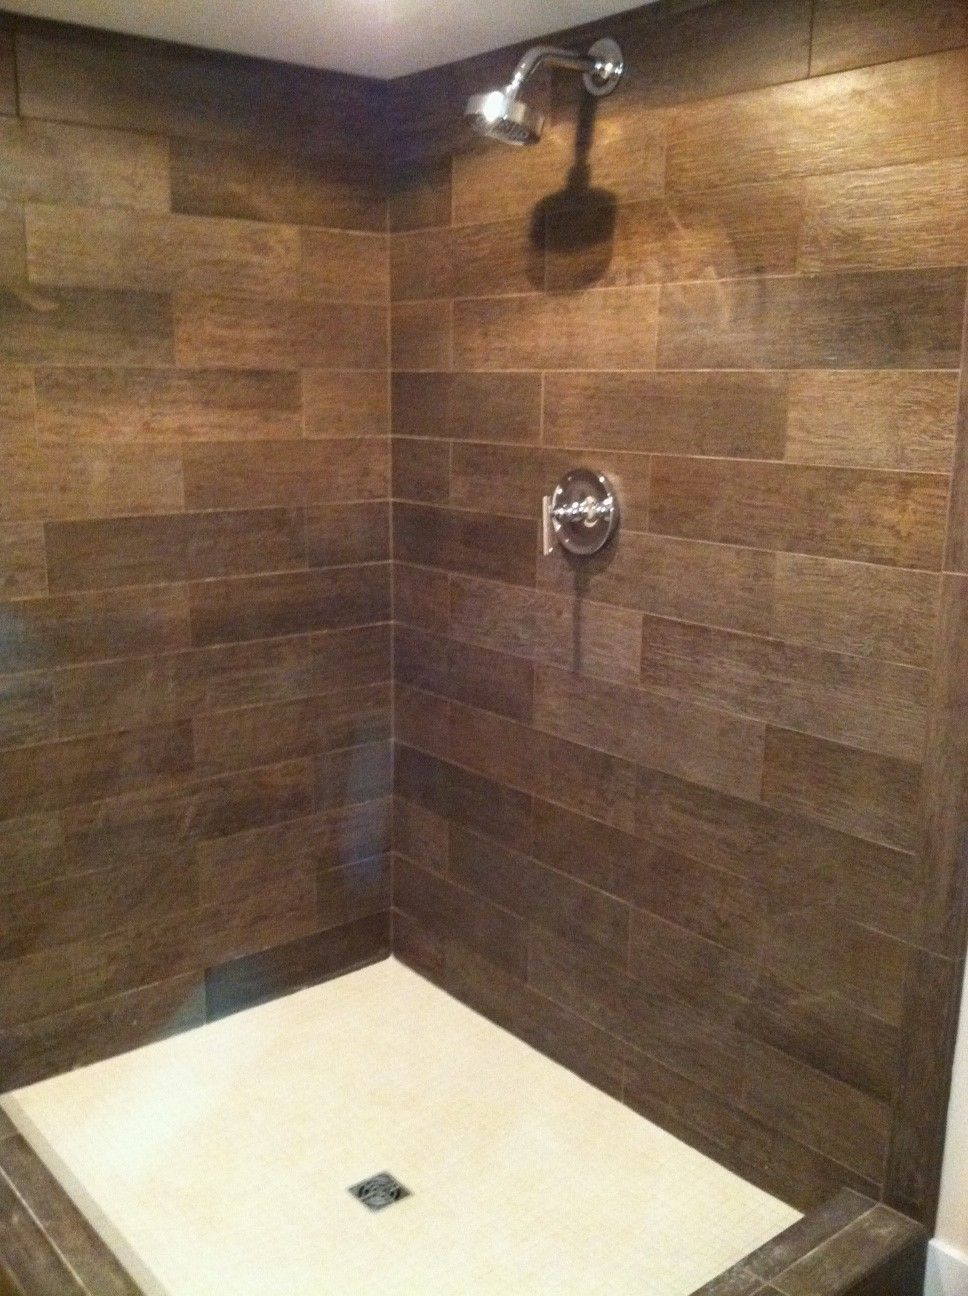 A lower level shower can have a warm welcoming feel when for Warm feel bathroom floor tiles